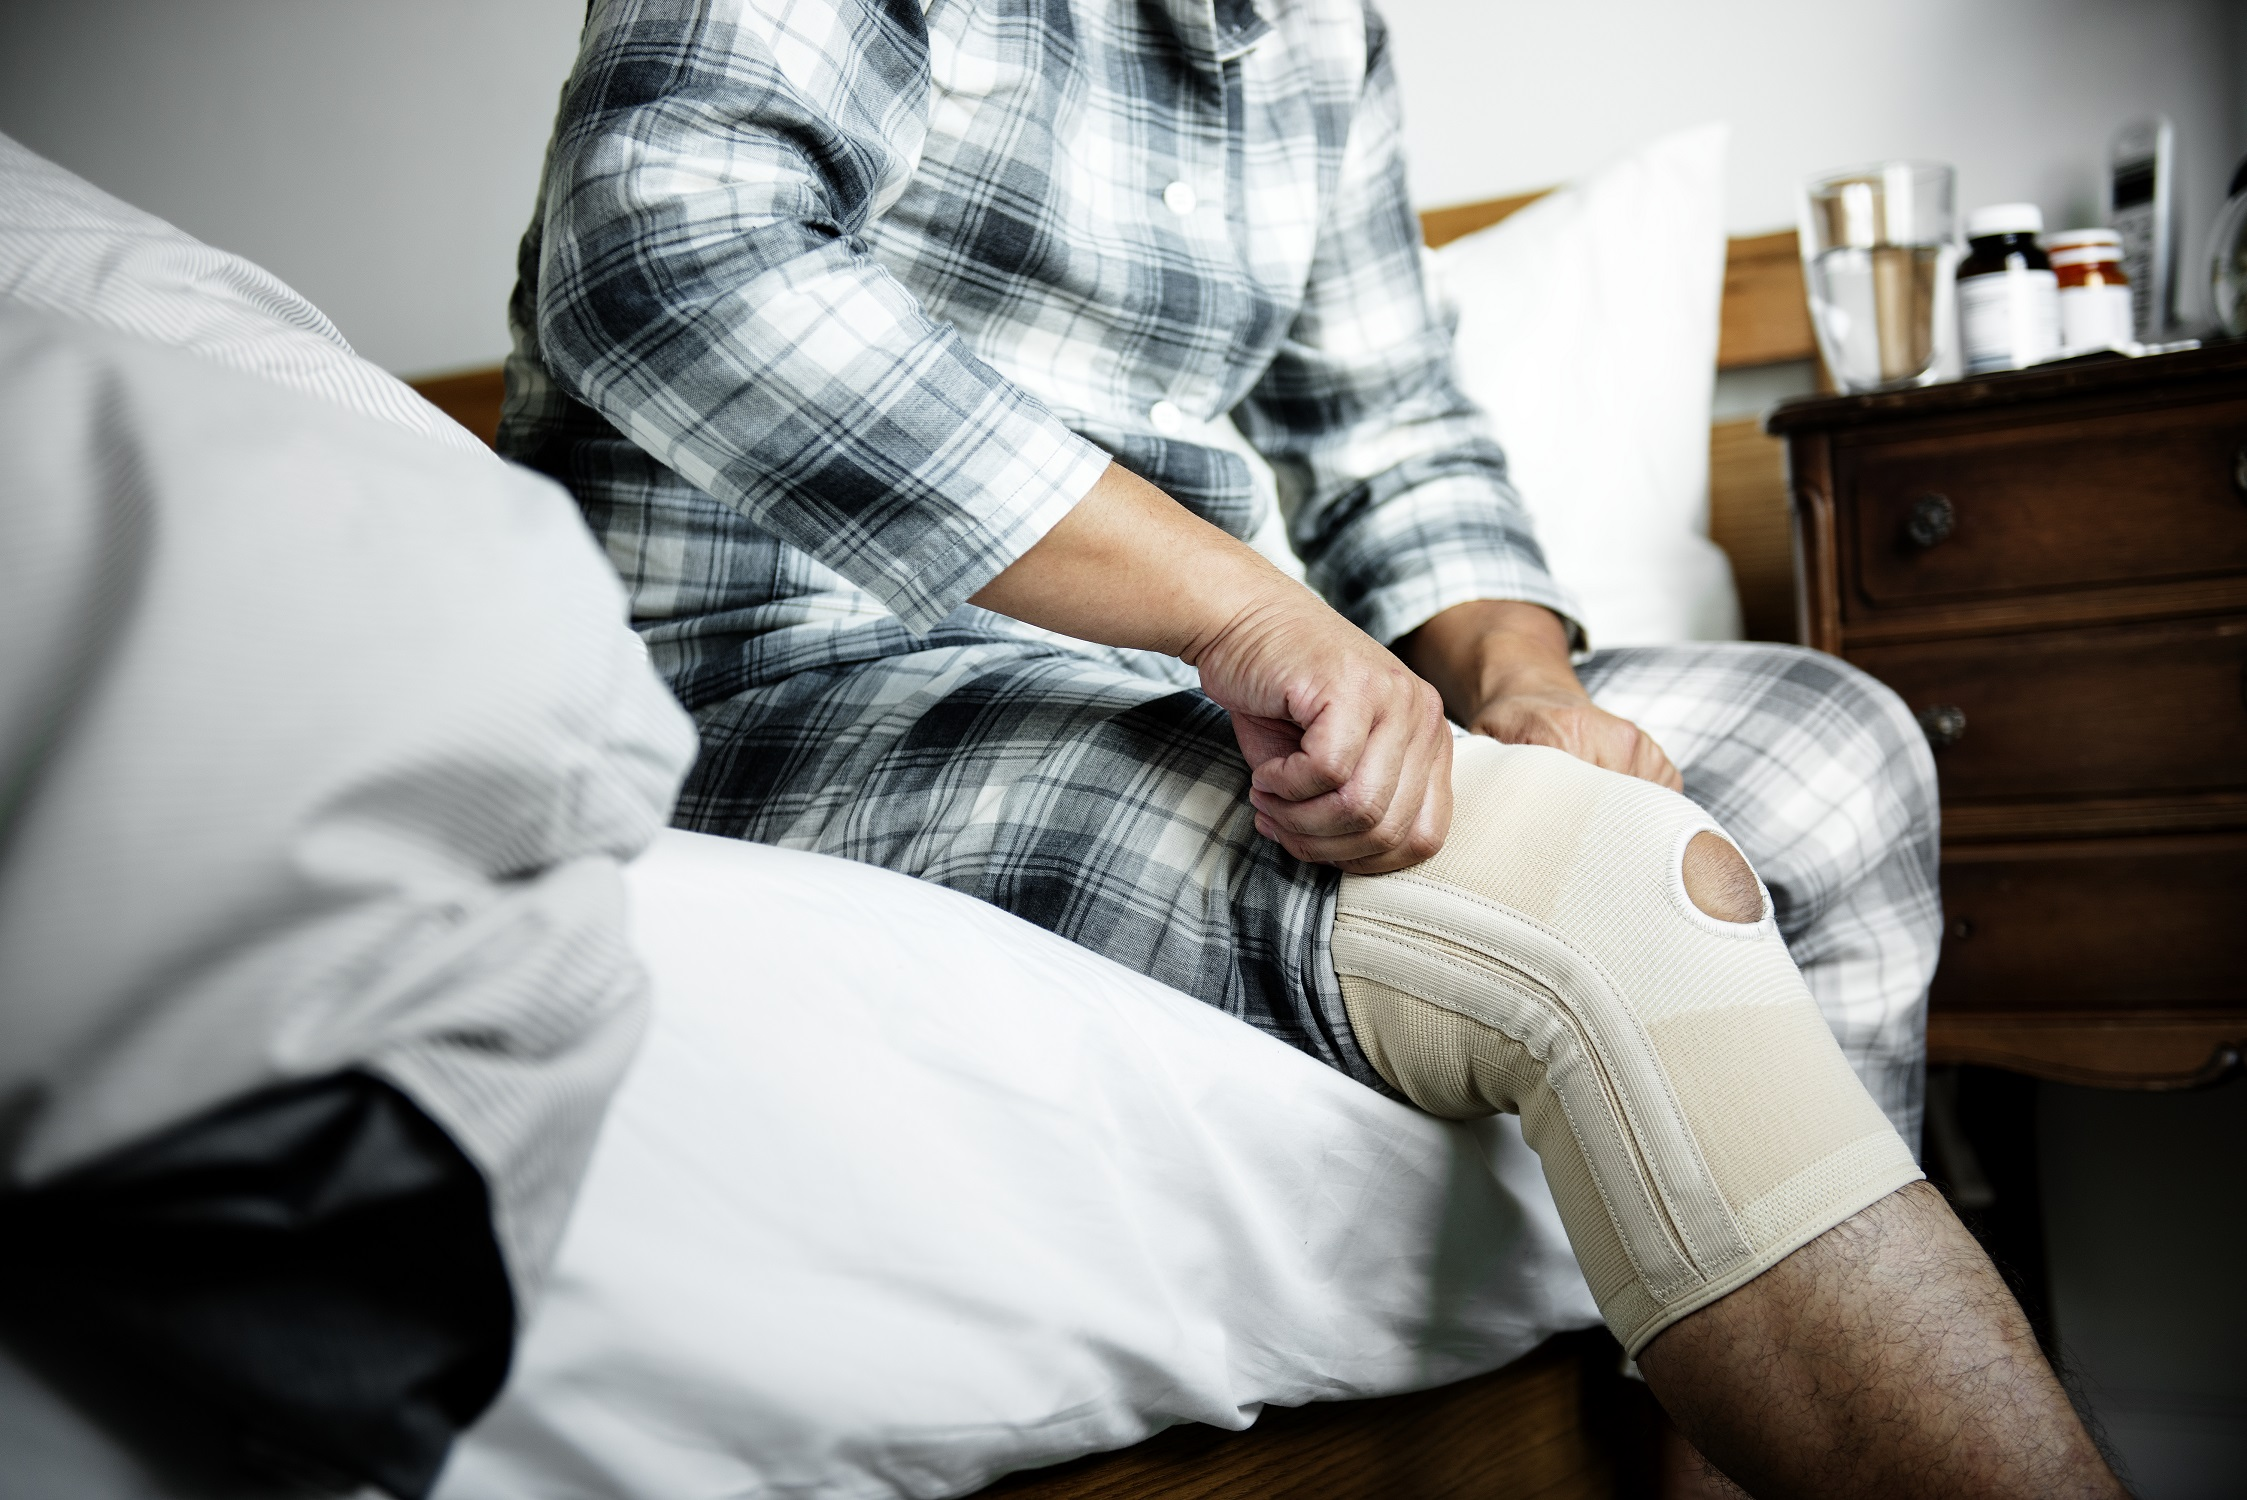 common knee injuries and treatments